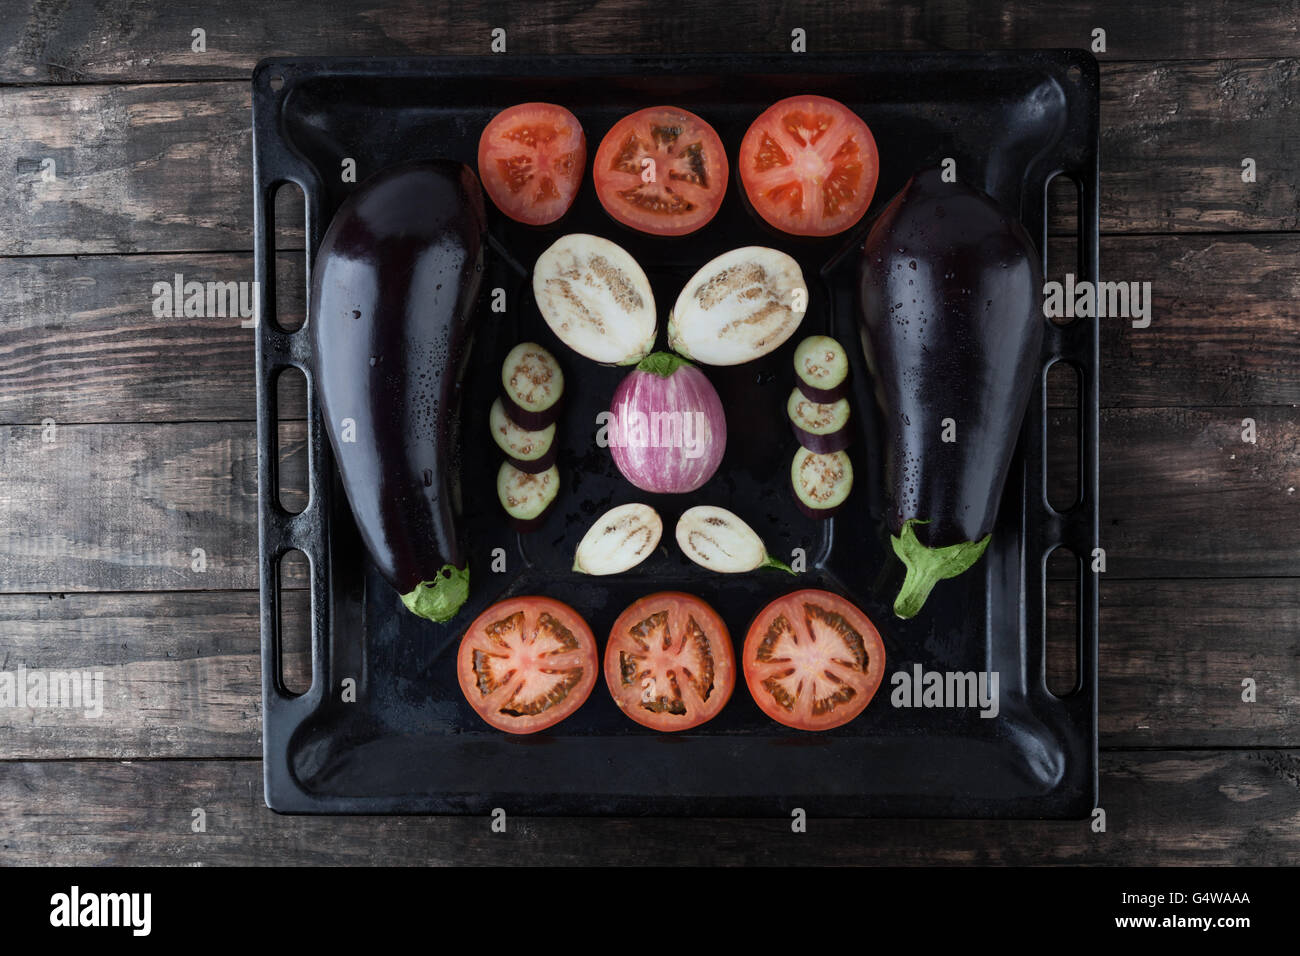 Whole and sliced eggplants and tomatoes on rustic baking tray. Top view. - Stock Image